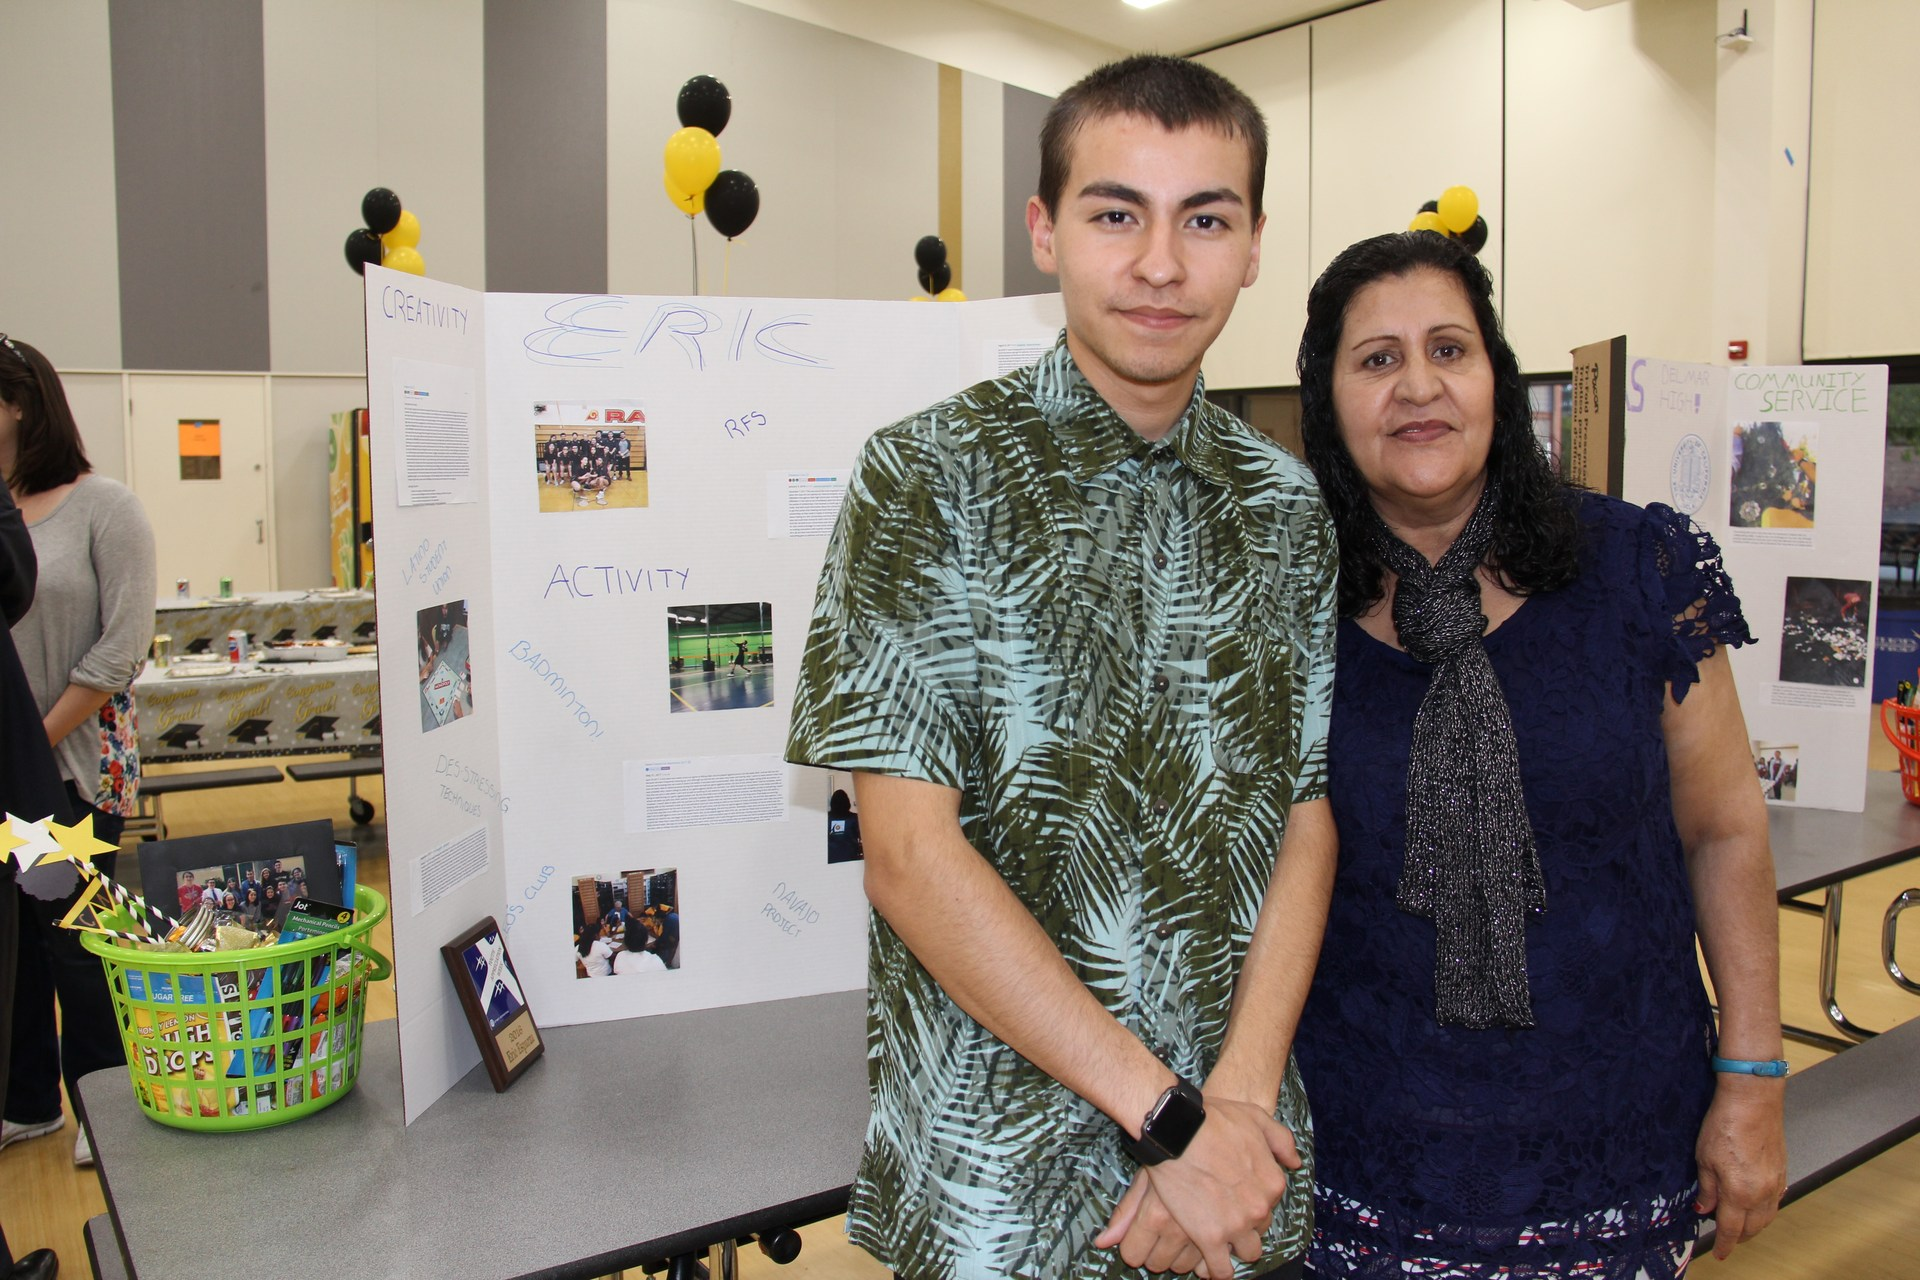 Image of IB Diploma Candidate with his Mom and presentation board at CAS Celebration Event